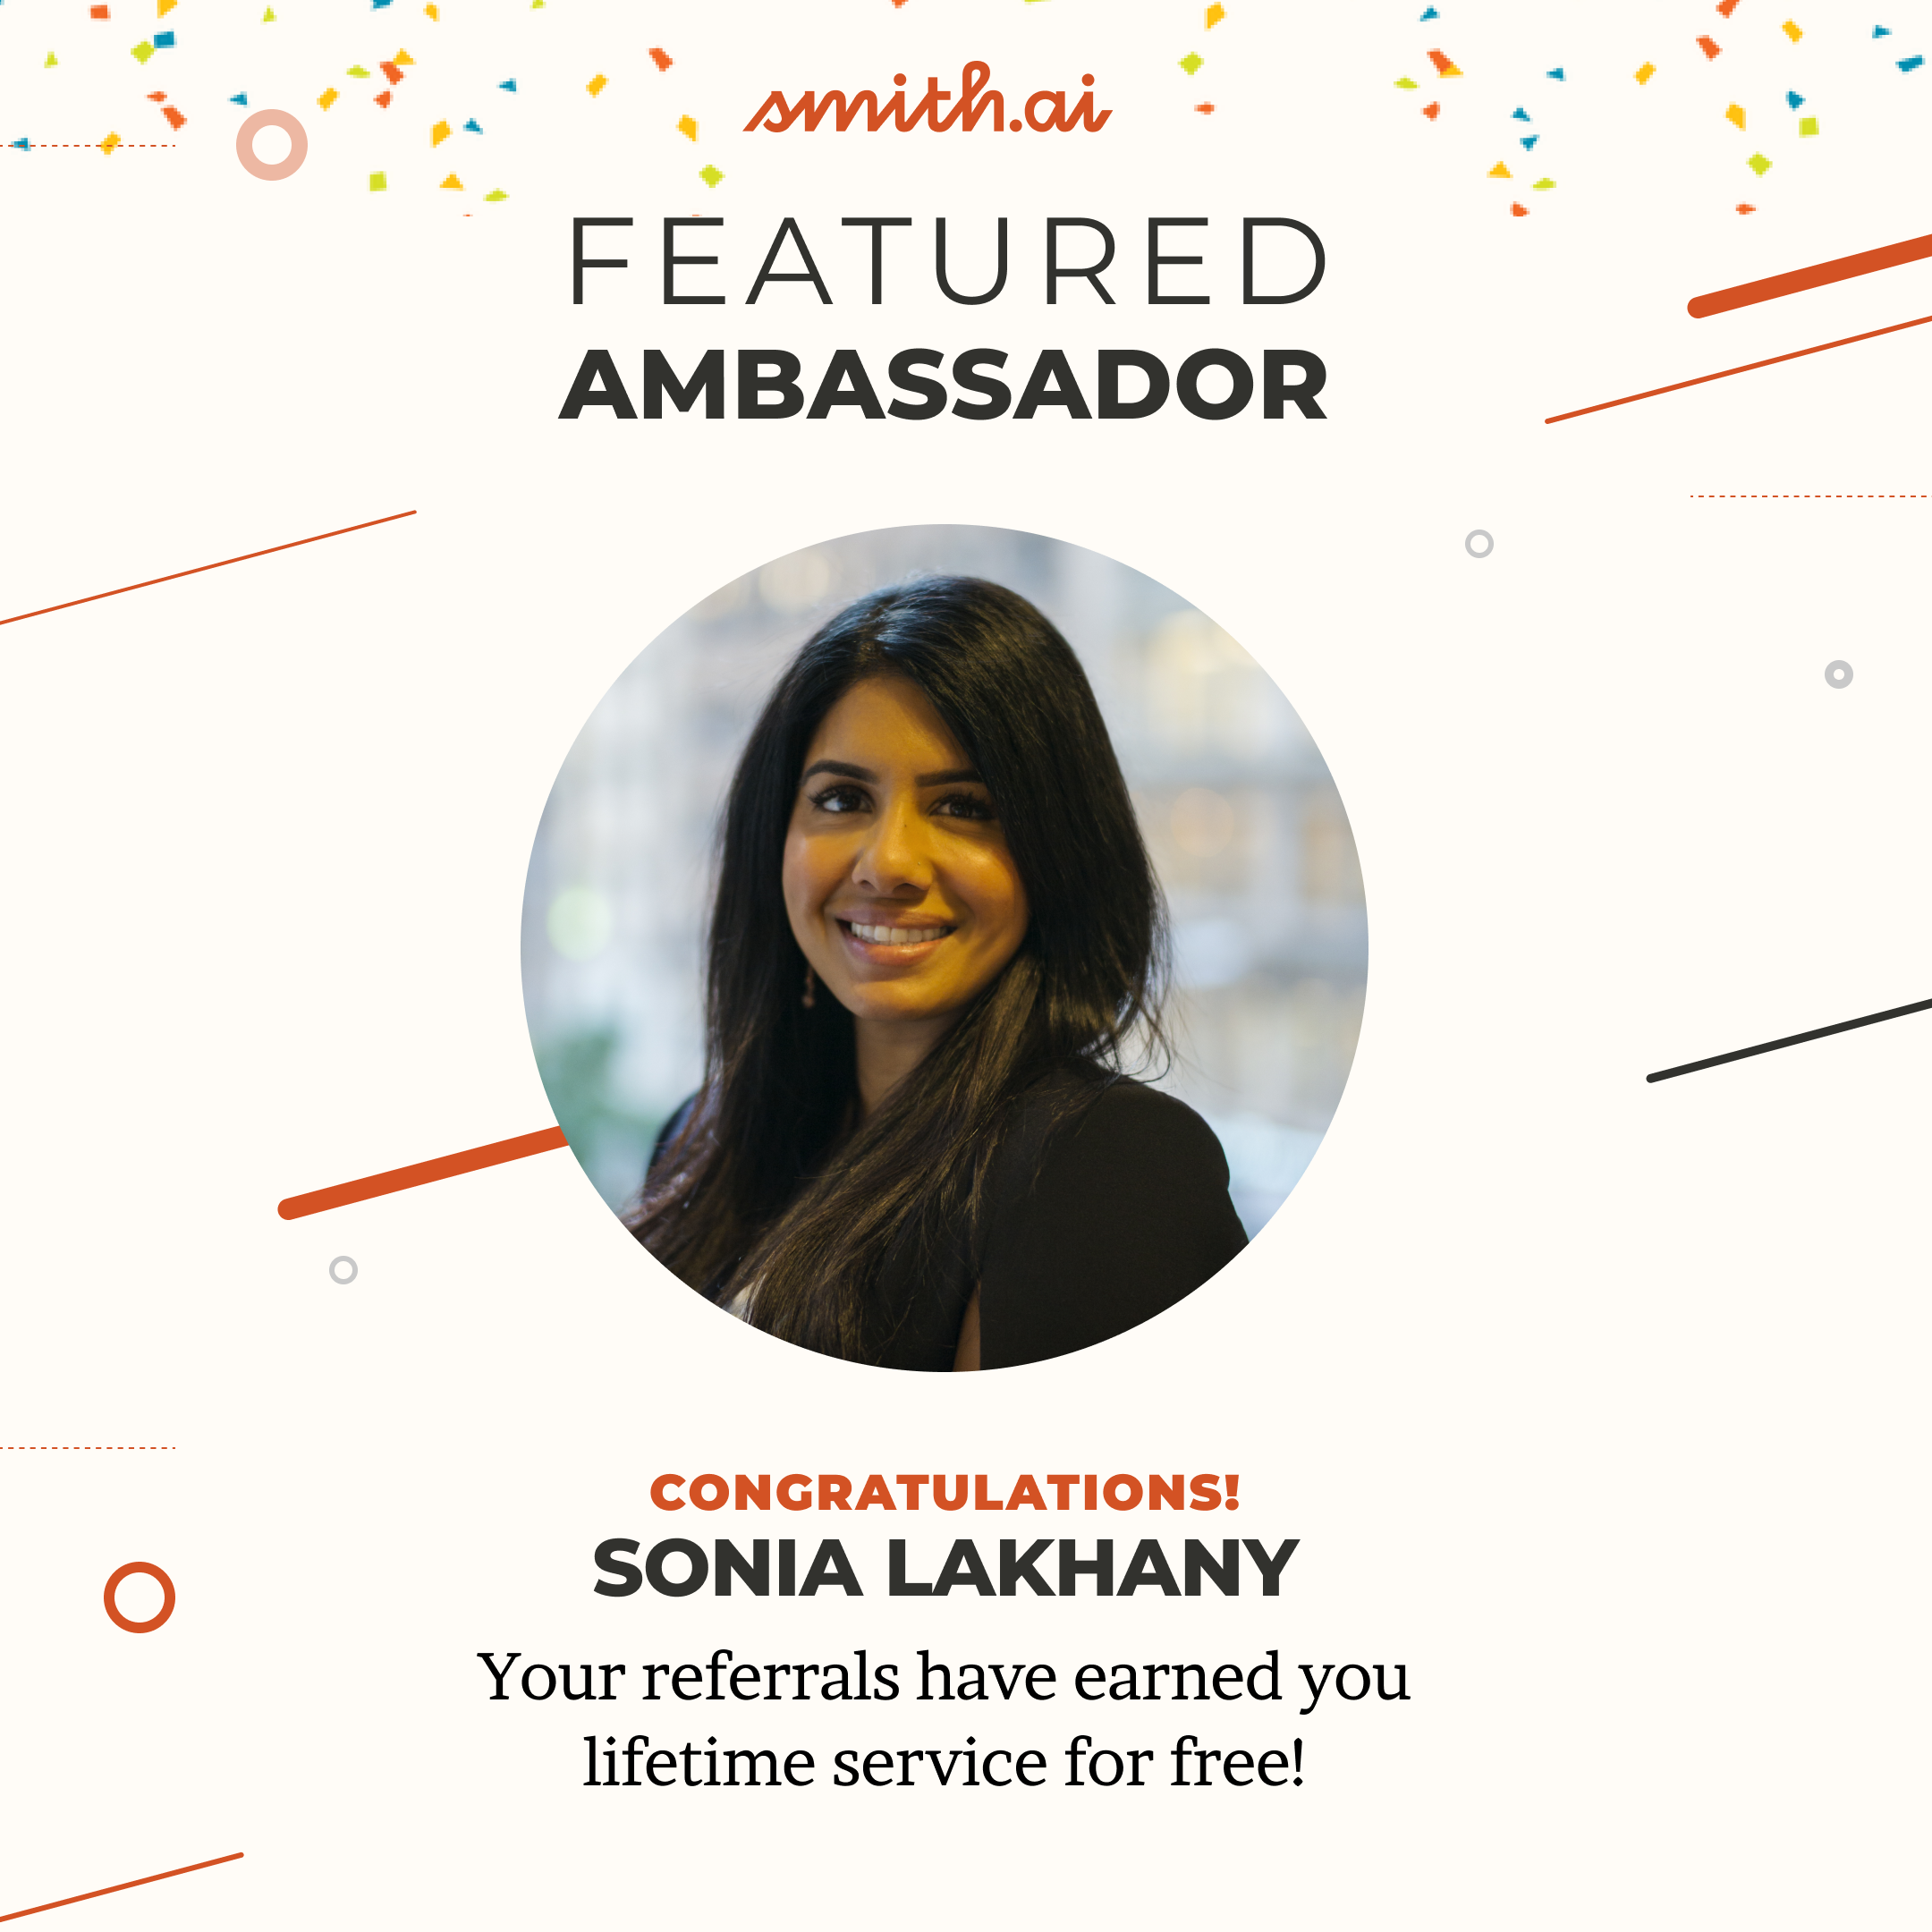 Smith.ai Ambassador Sonia Lakhany Earns Lifetime Receptionist Services for Free!